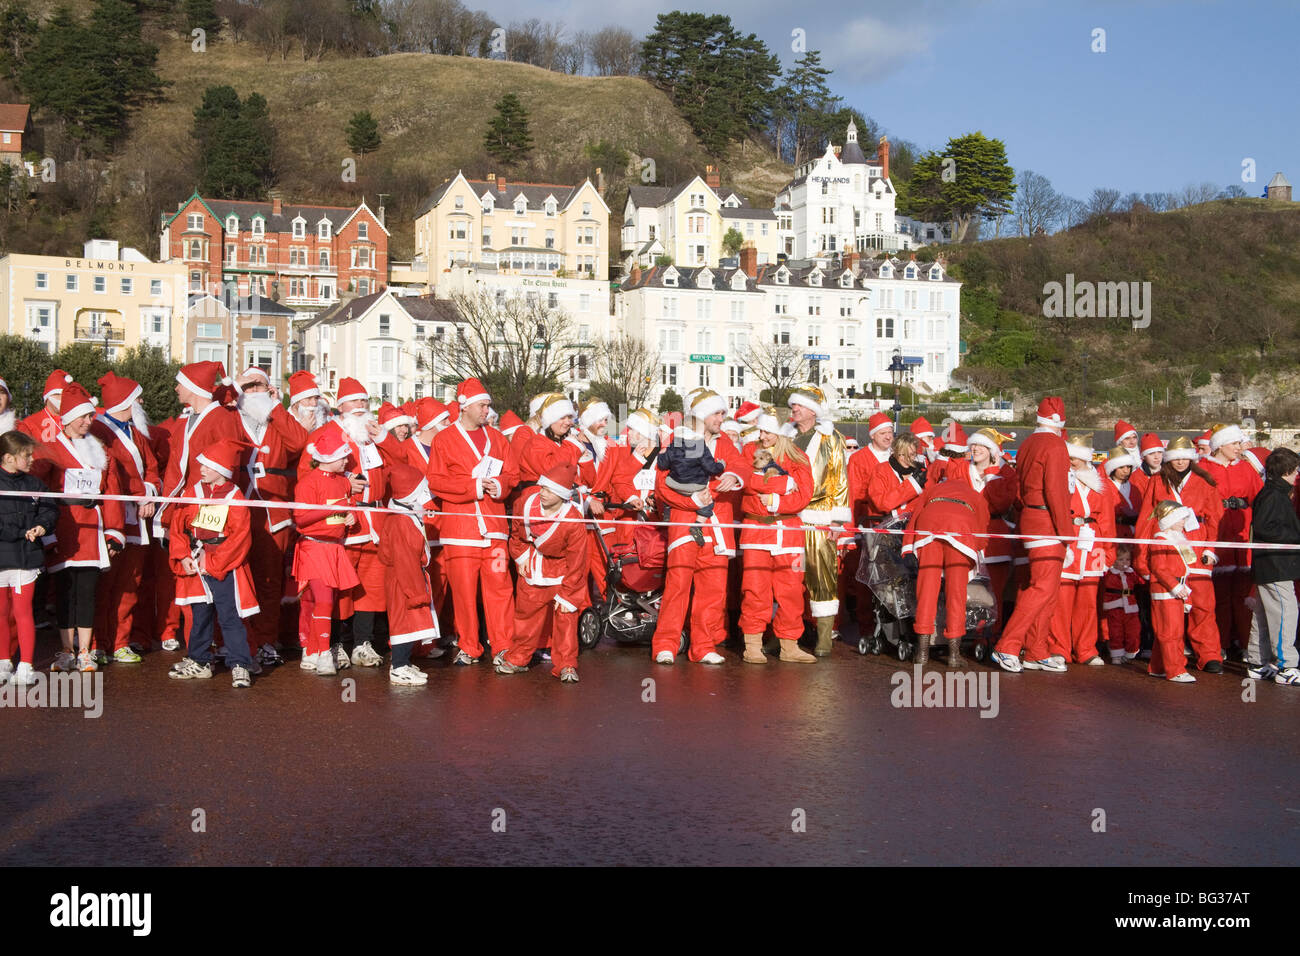 Llandudno North Wales UK December Participants in the annual Santa run for Charity lining up on the promenade raising - Stock Image